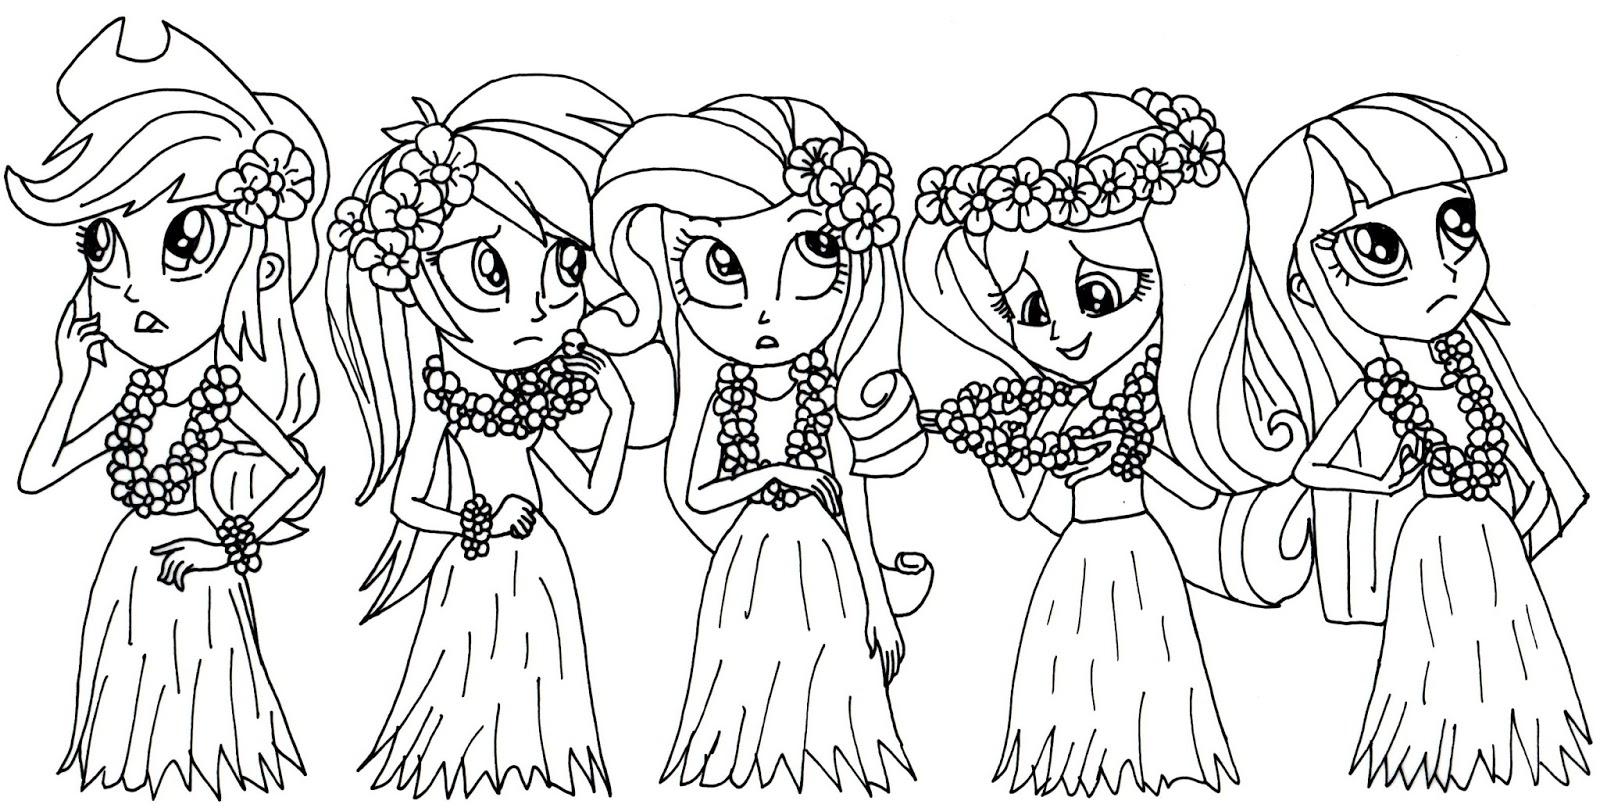 My Little Pony Princess Twilight Sparkle 01 Coloring Page additionally Free Little Pony Coloring Pages blogspot as well Desenhos Para Colorir My Little Pony moreover Dibujos Para Colorear De Rainbow Dash together with Dibujos Para Colorear De Applejack De. on twilight sparkle no